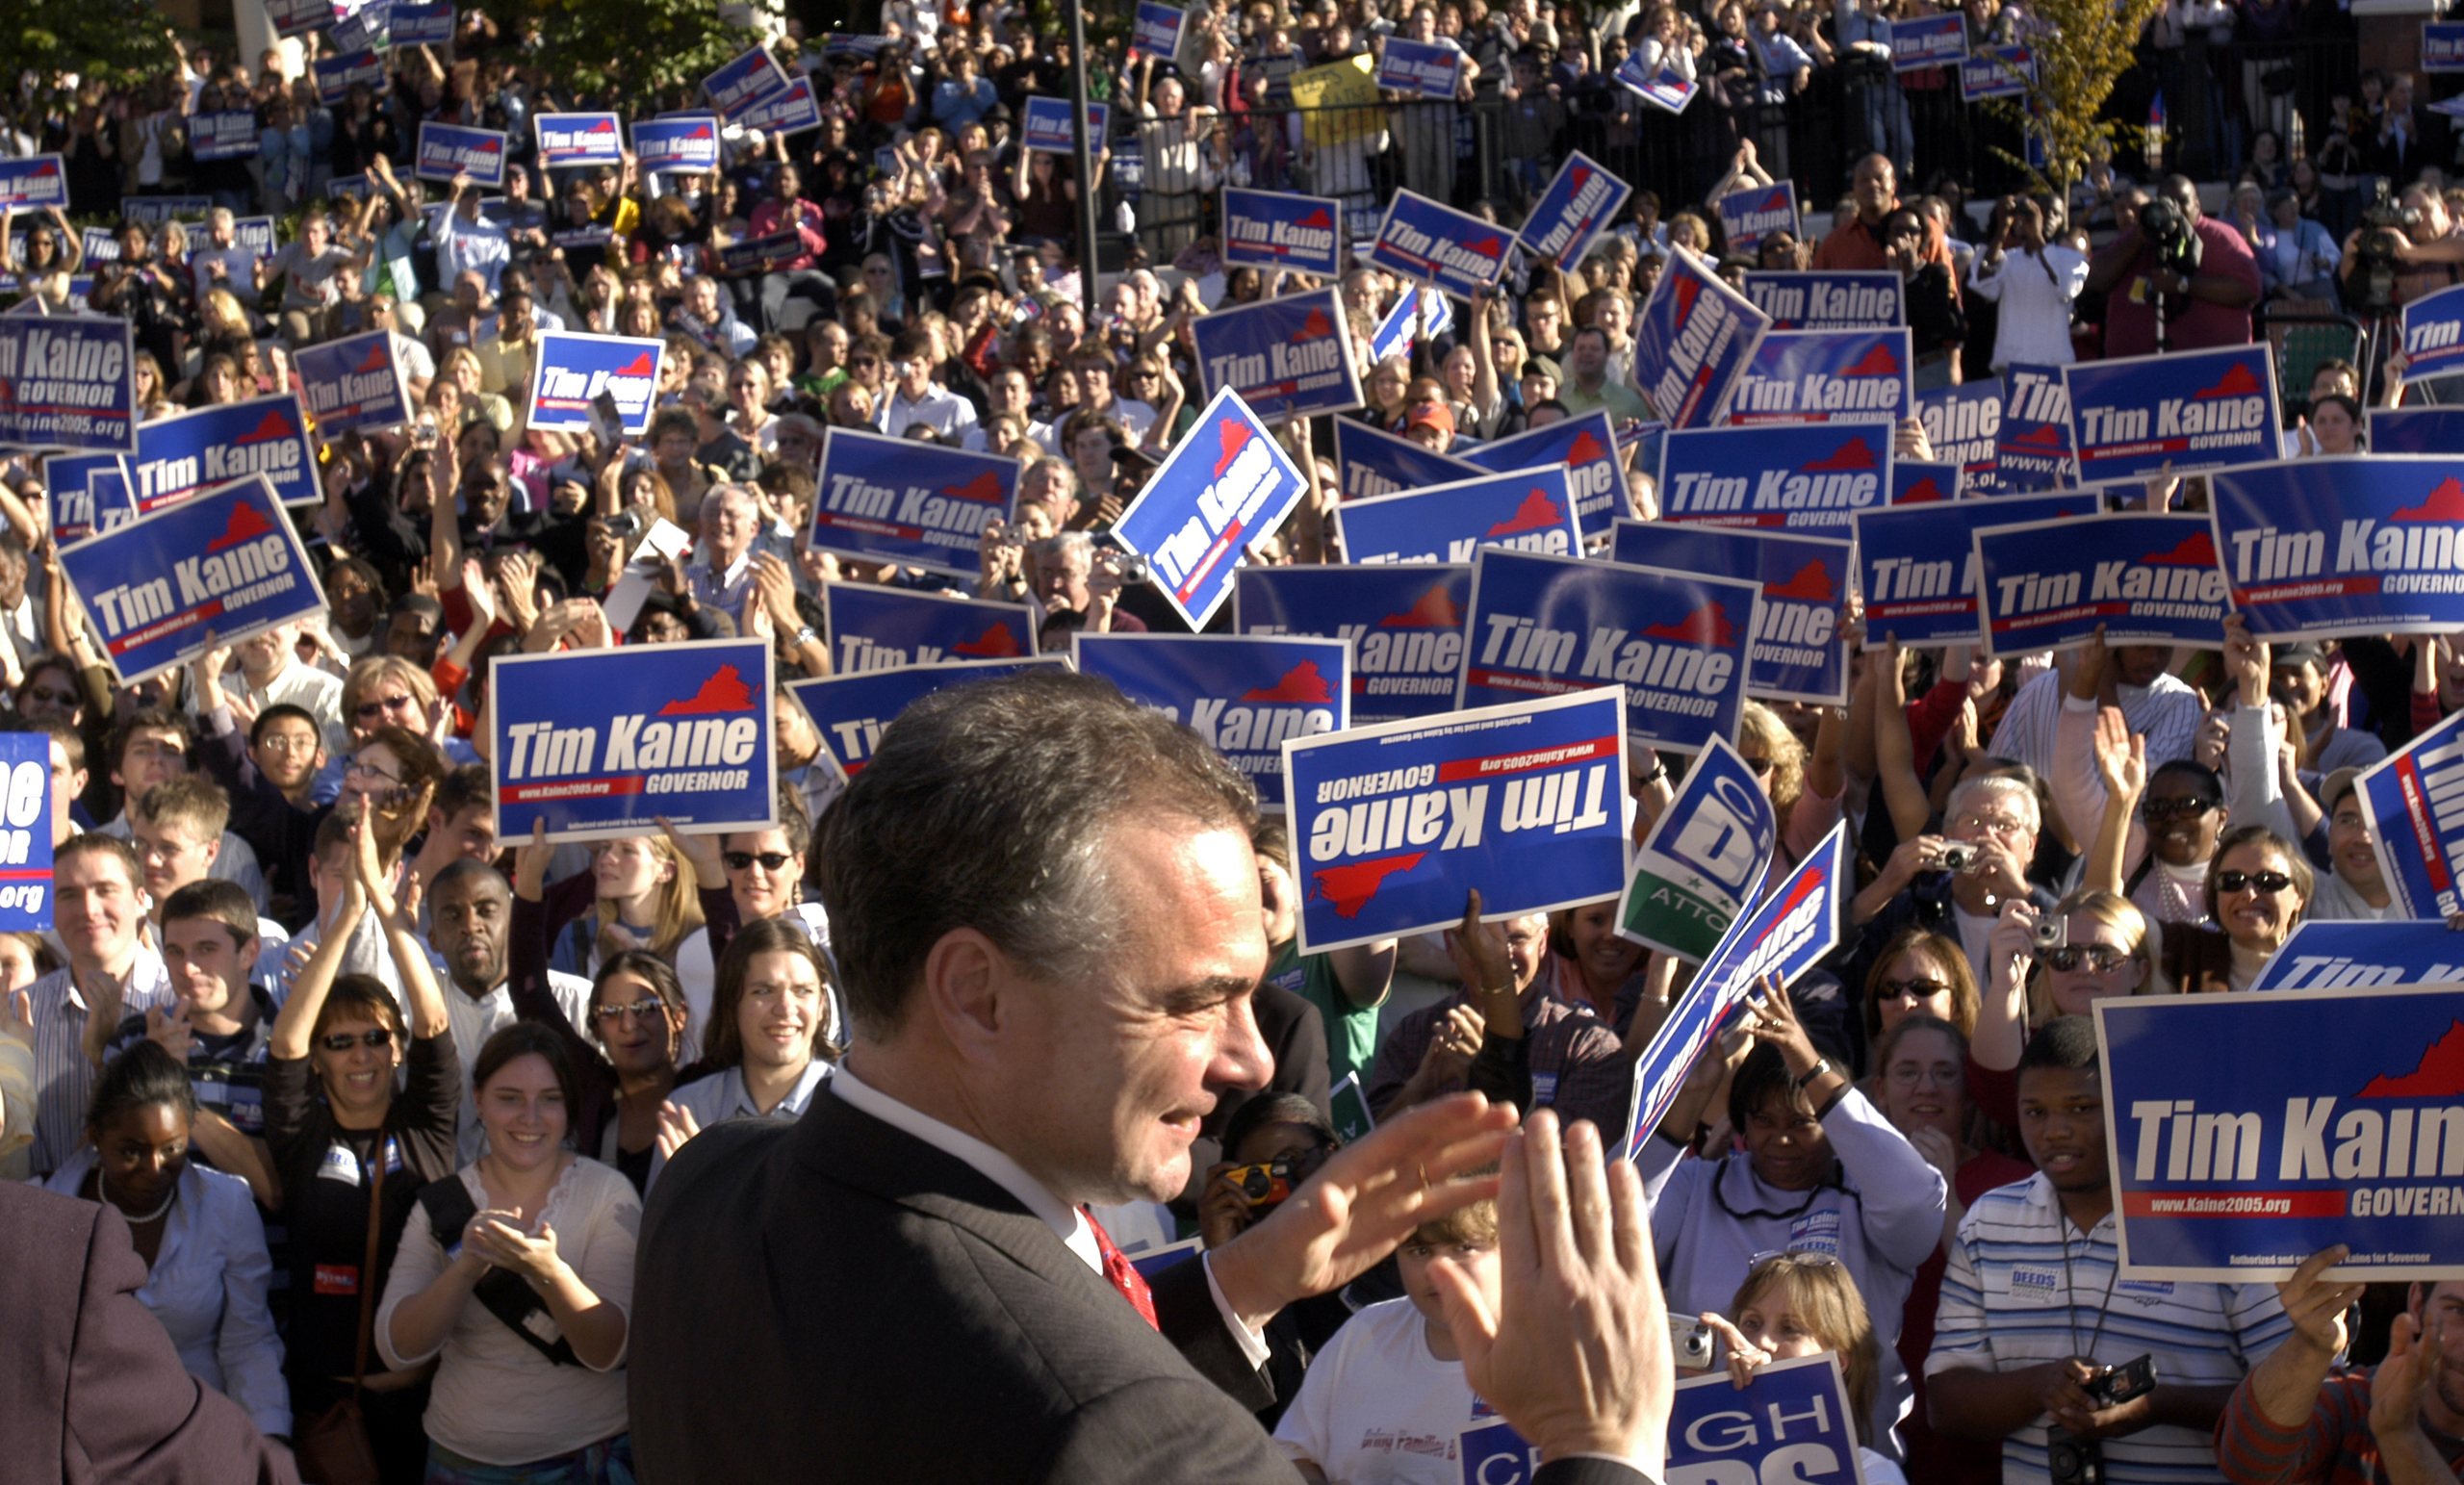 Virginia Democratic candidate for governor, Tim Kaine, appears at a rally at Virginia Commonwealth University in Richmond, Va. on Oct. 30, 2005.